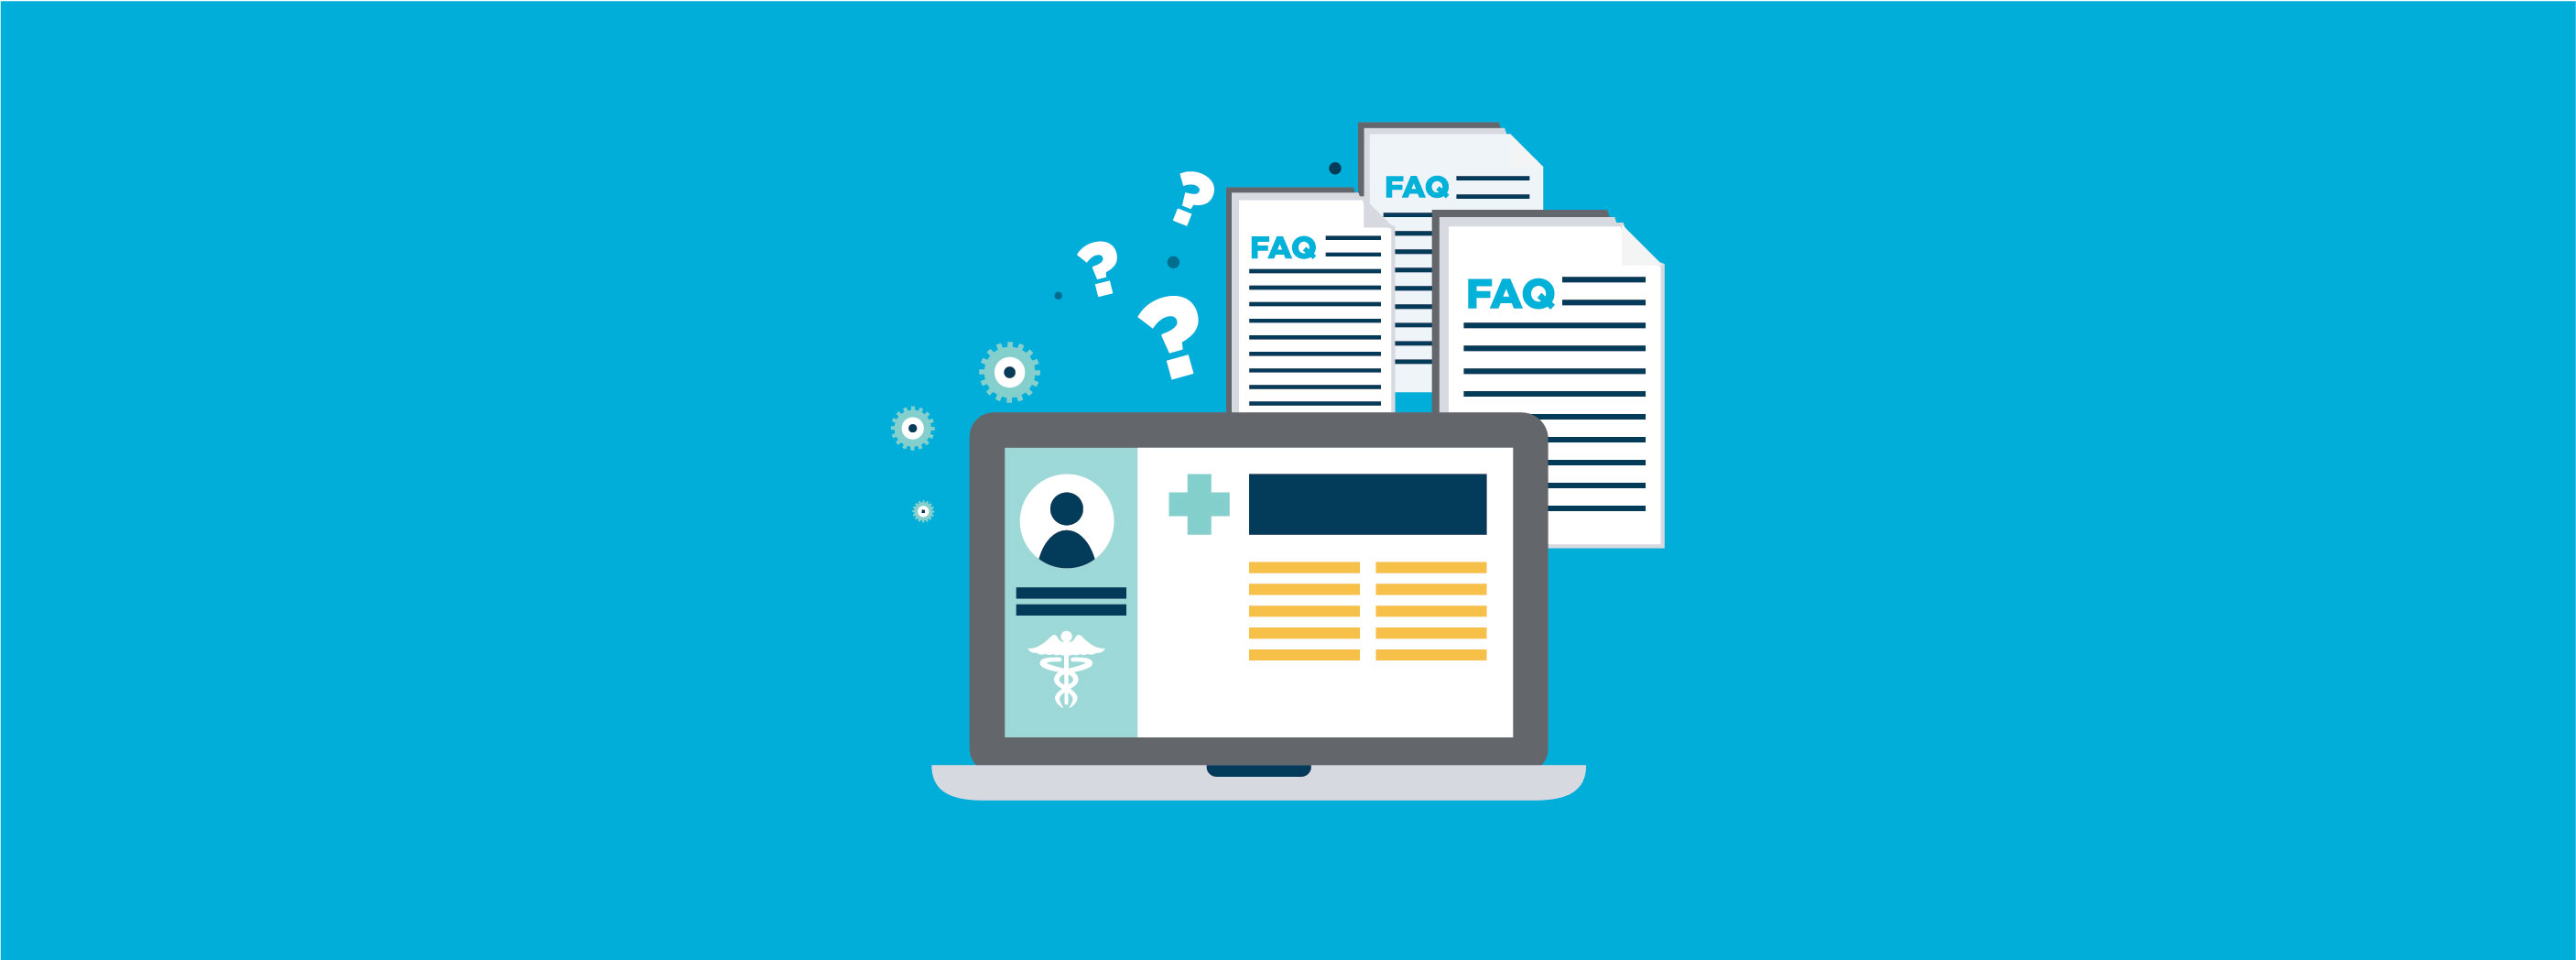 Payor Enrollment FAQs Answered